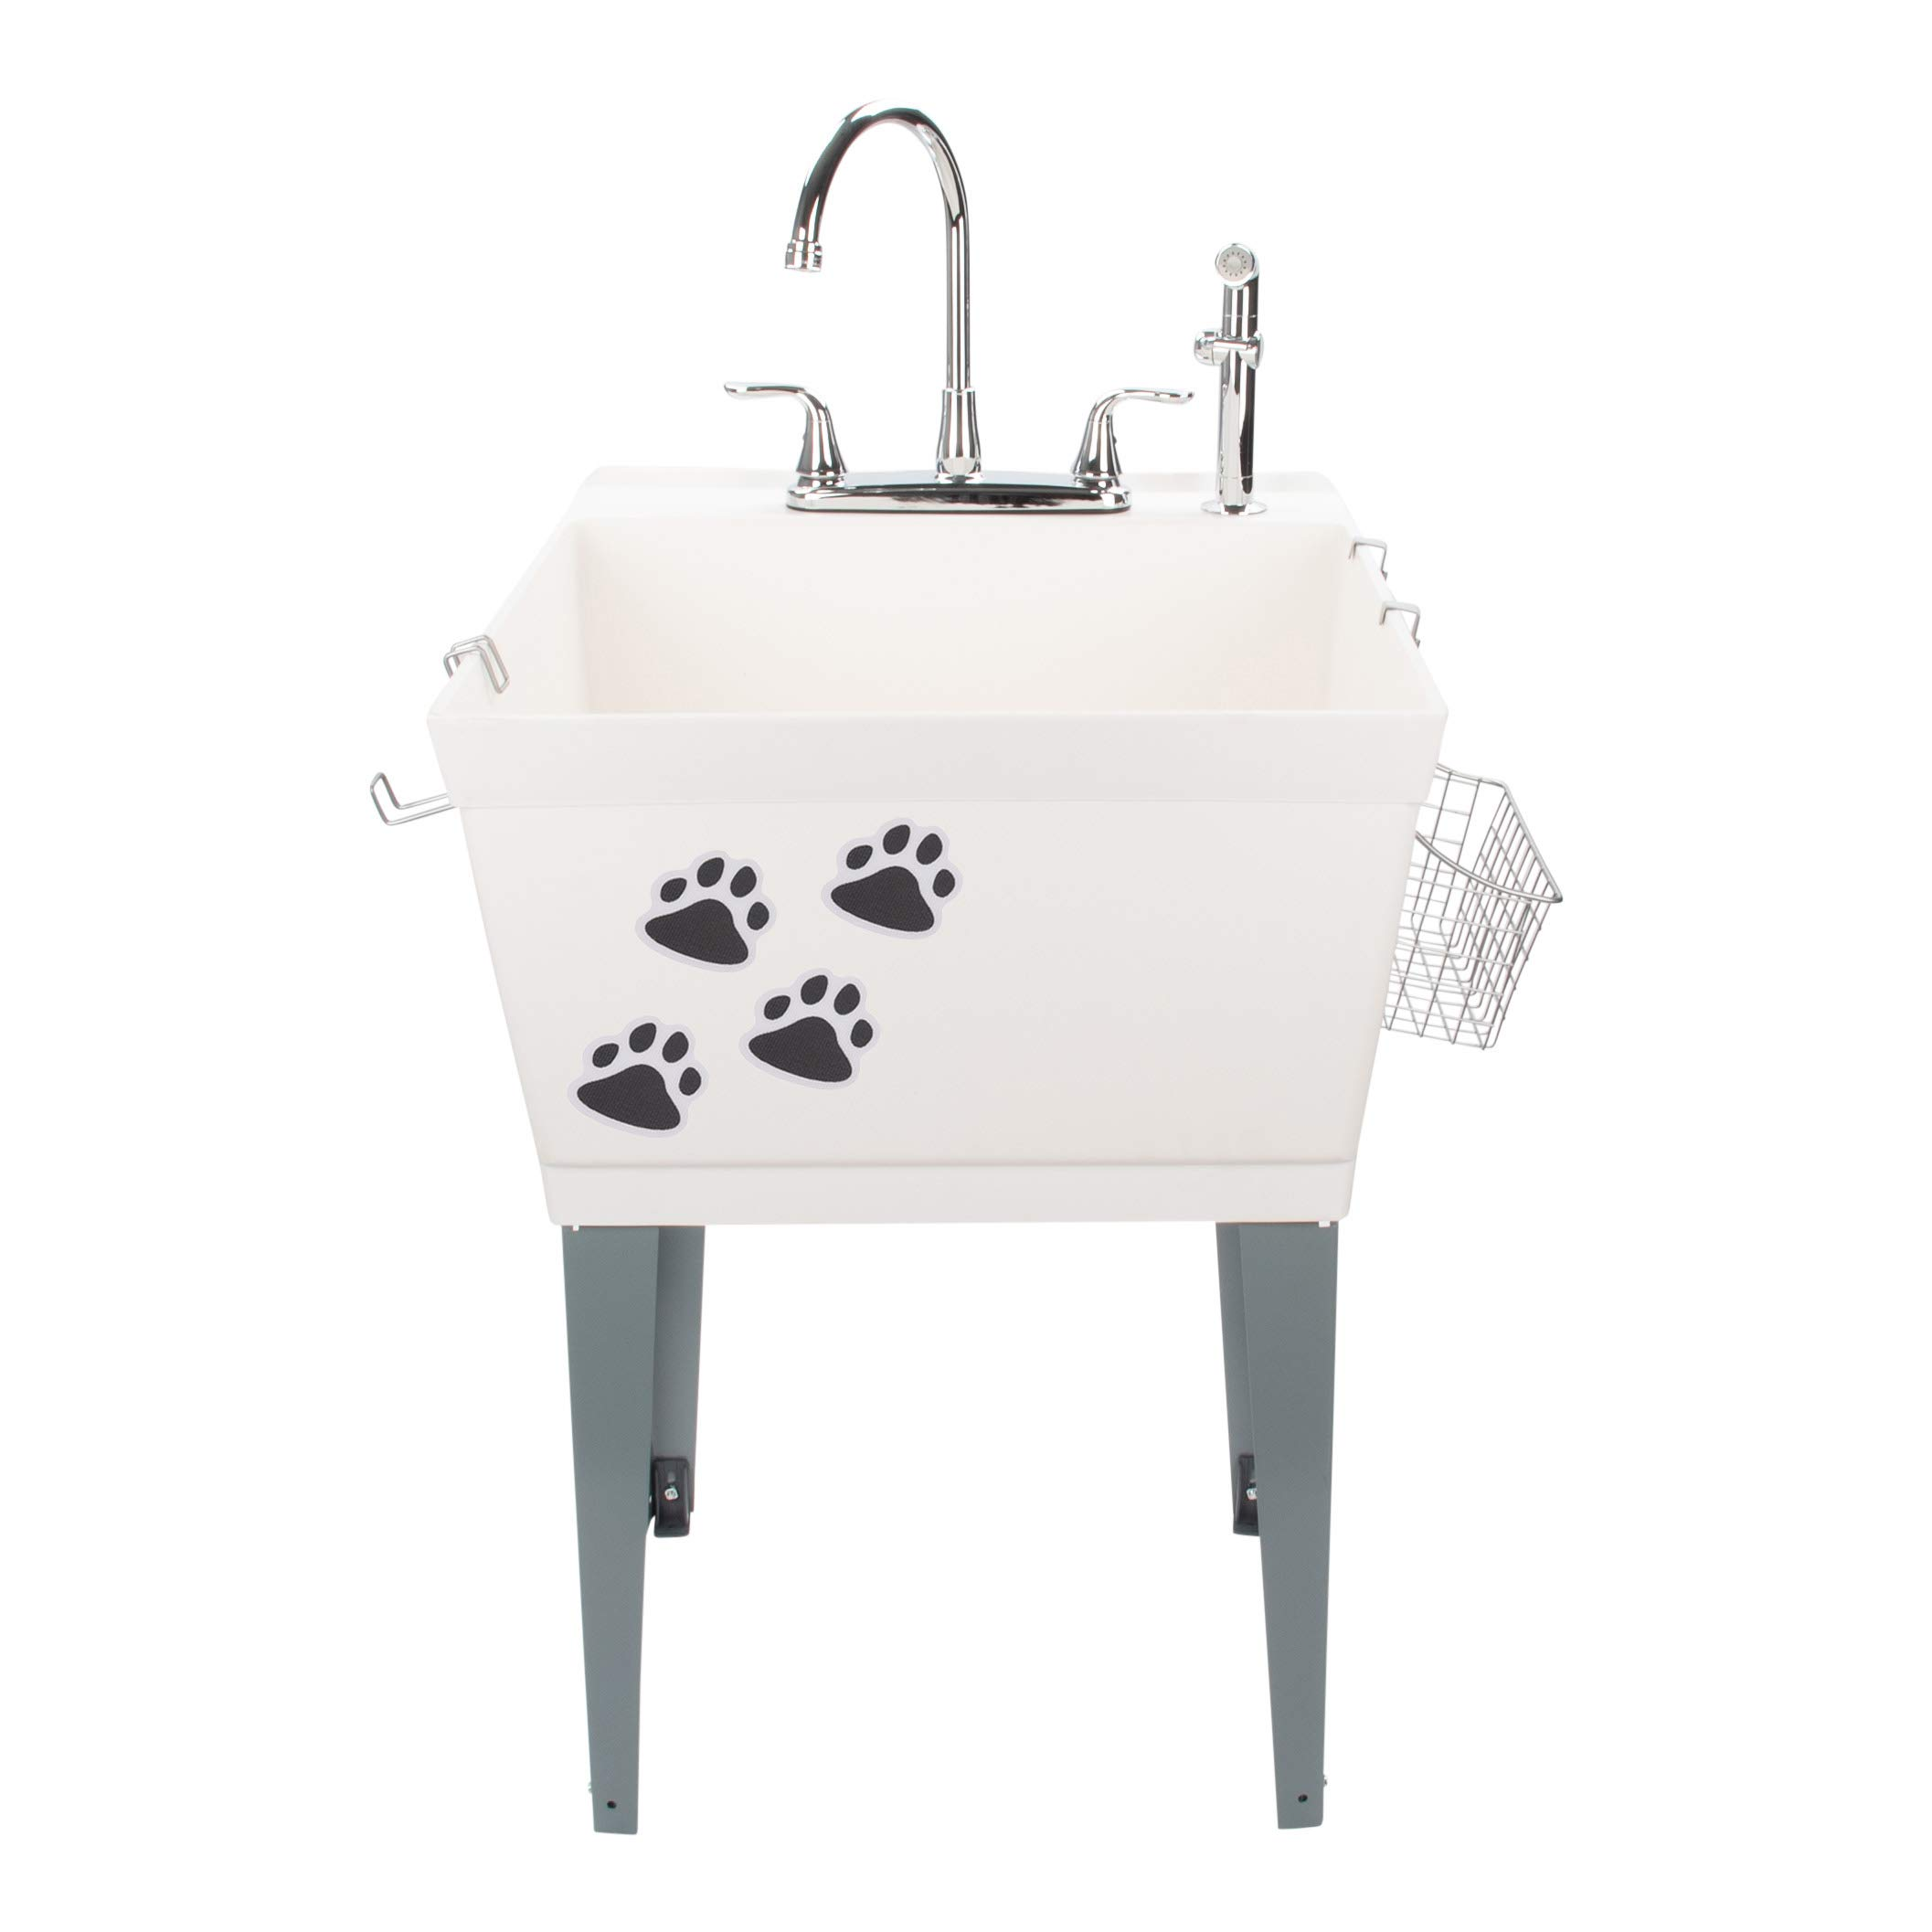 Laundry Sink Utility Tub With High Arc Chrome Faucet With Pet Friendly Accessories, Side Sprayer, Hooks, Baskets, Heavy Duty Sink With Reinforced Wall Bracket, Suitable for Washroom Garage Workshop